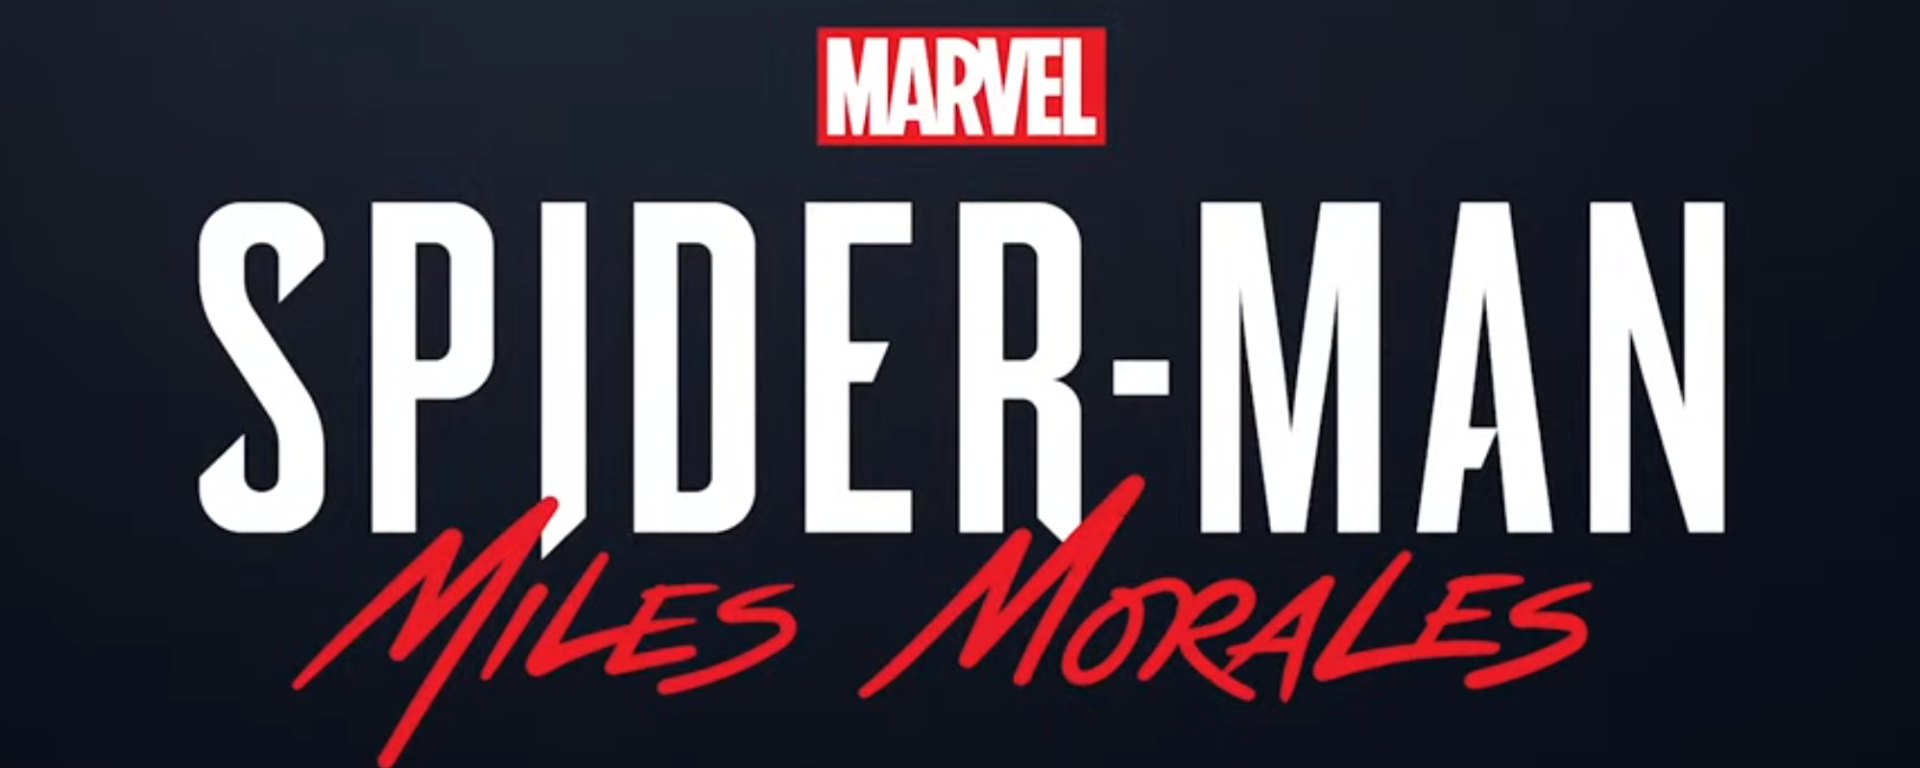 Spider-Man: Miles Morales capa do game